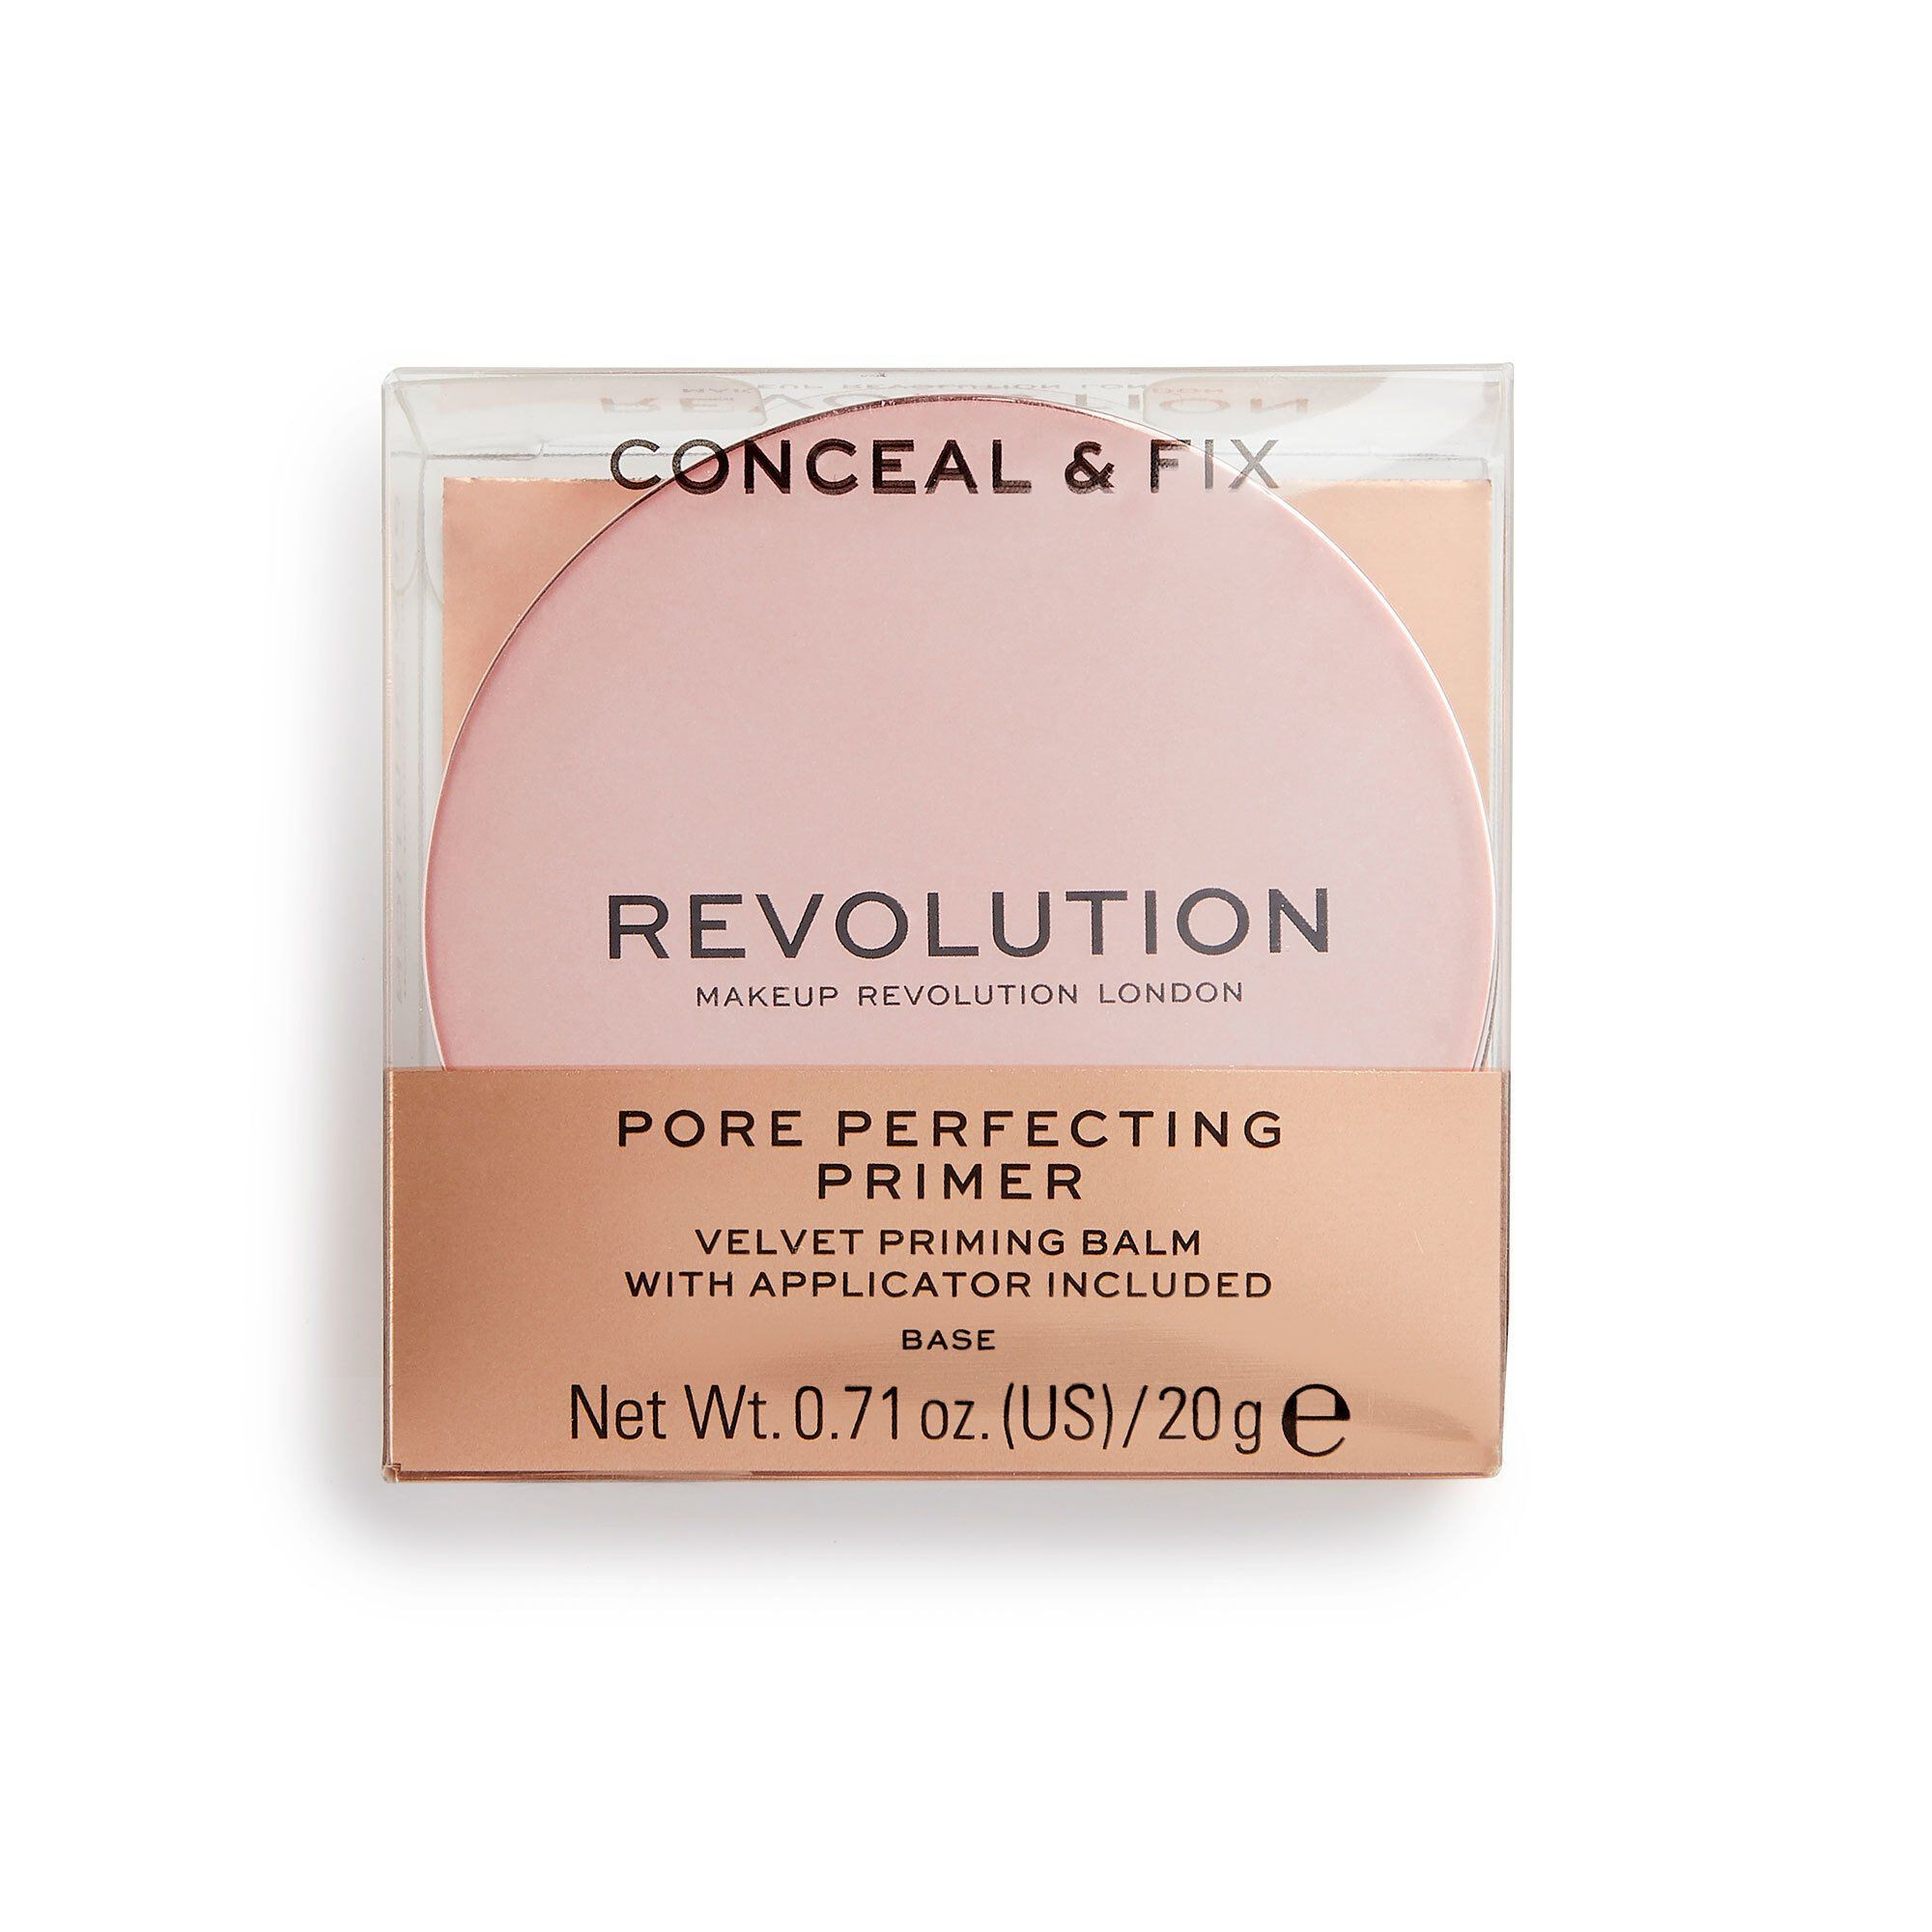 Gesichtsprimer - Conceal & Fix Pore Perfecting Primer